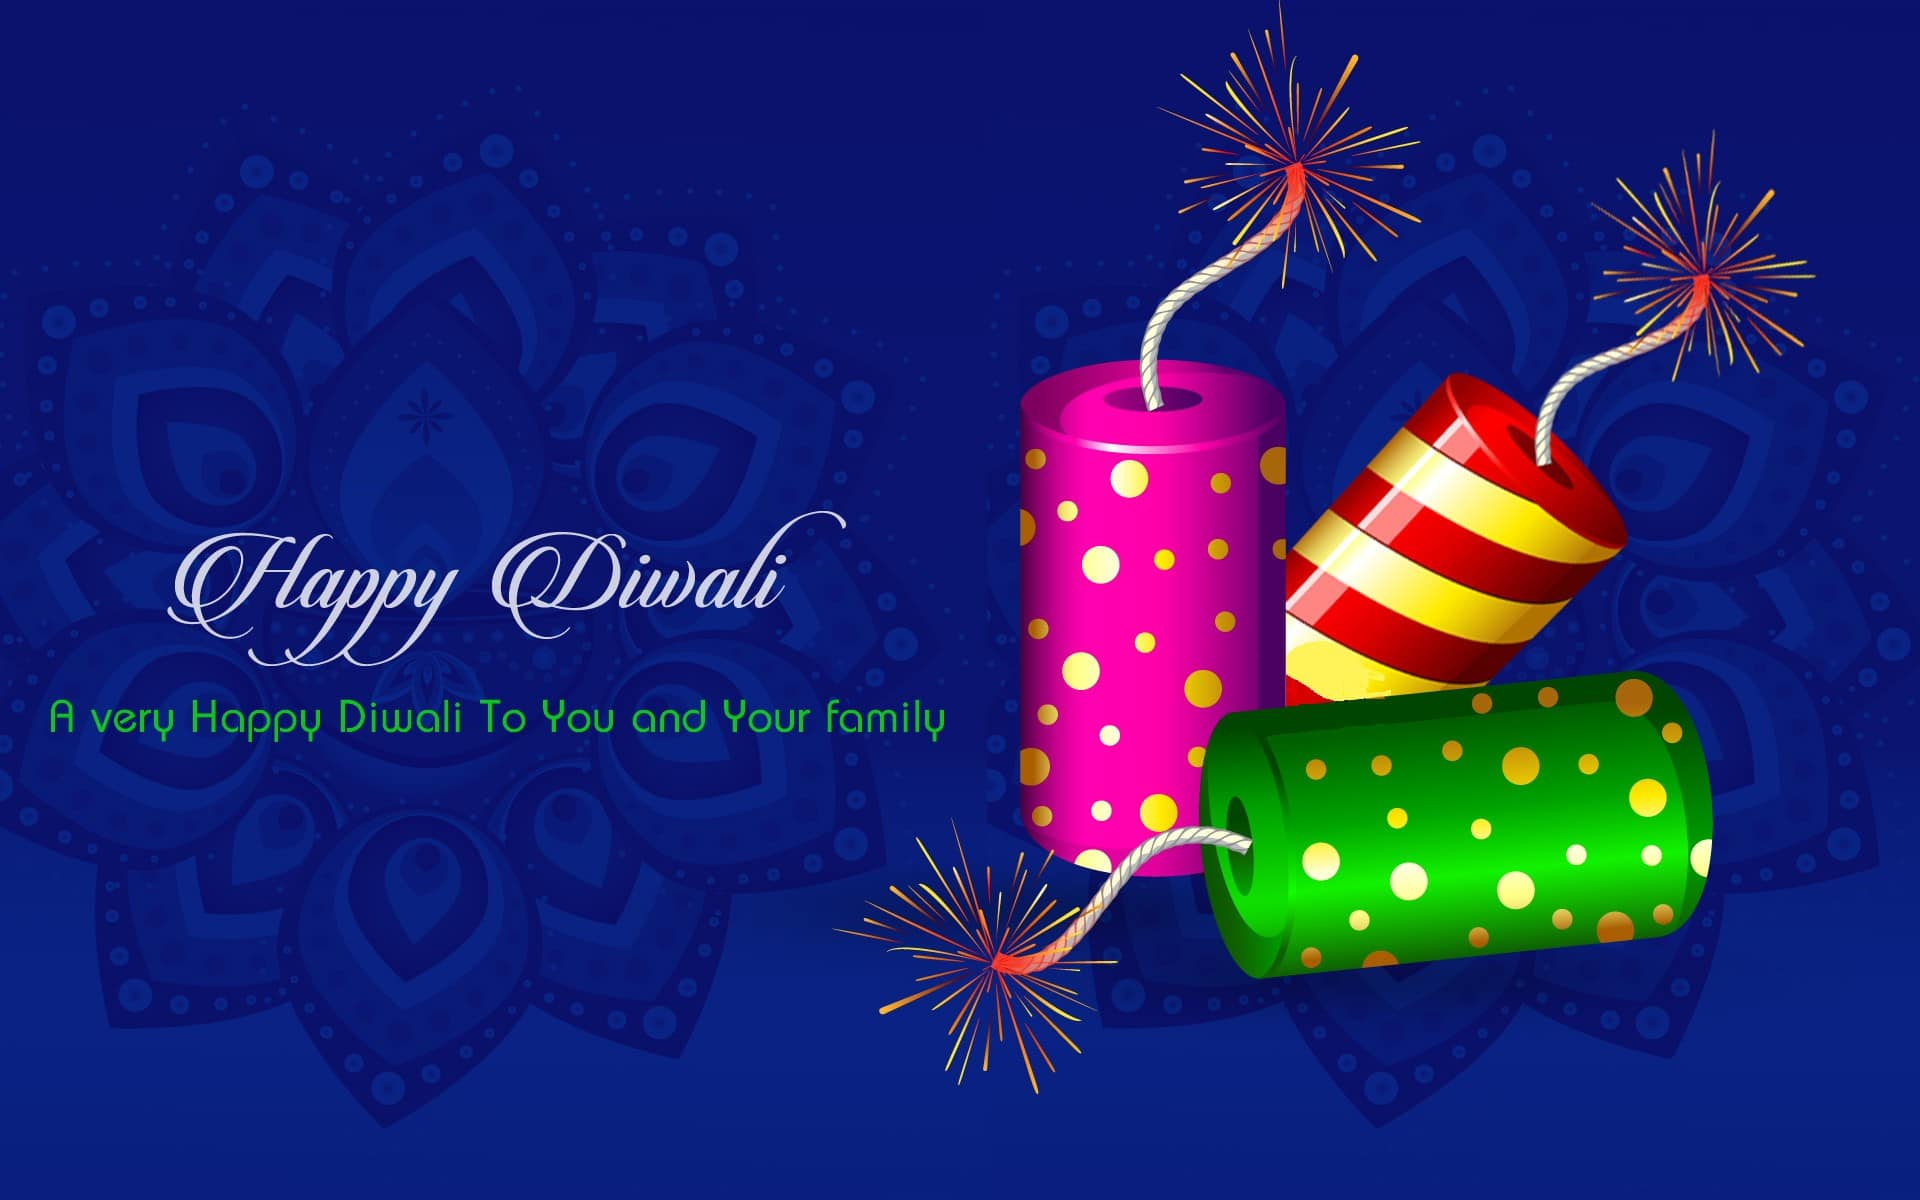 Diwali Cracker Wishes